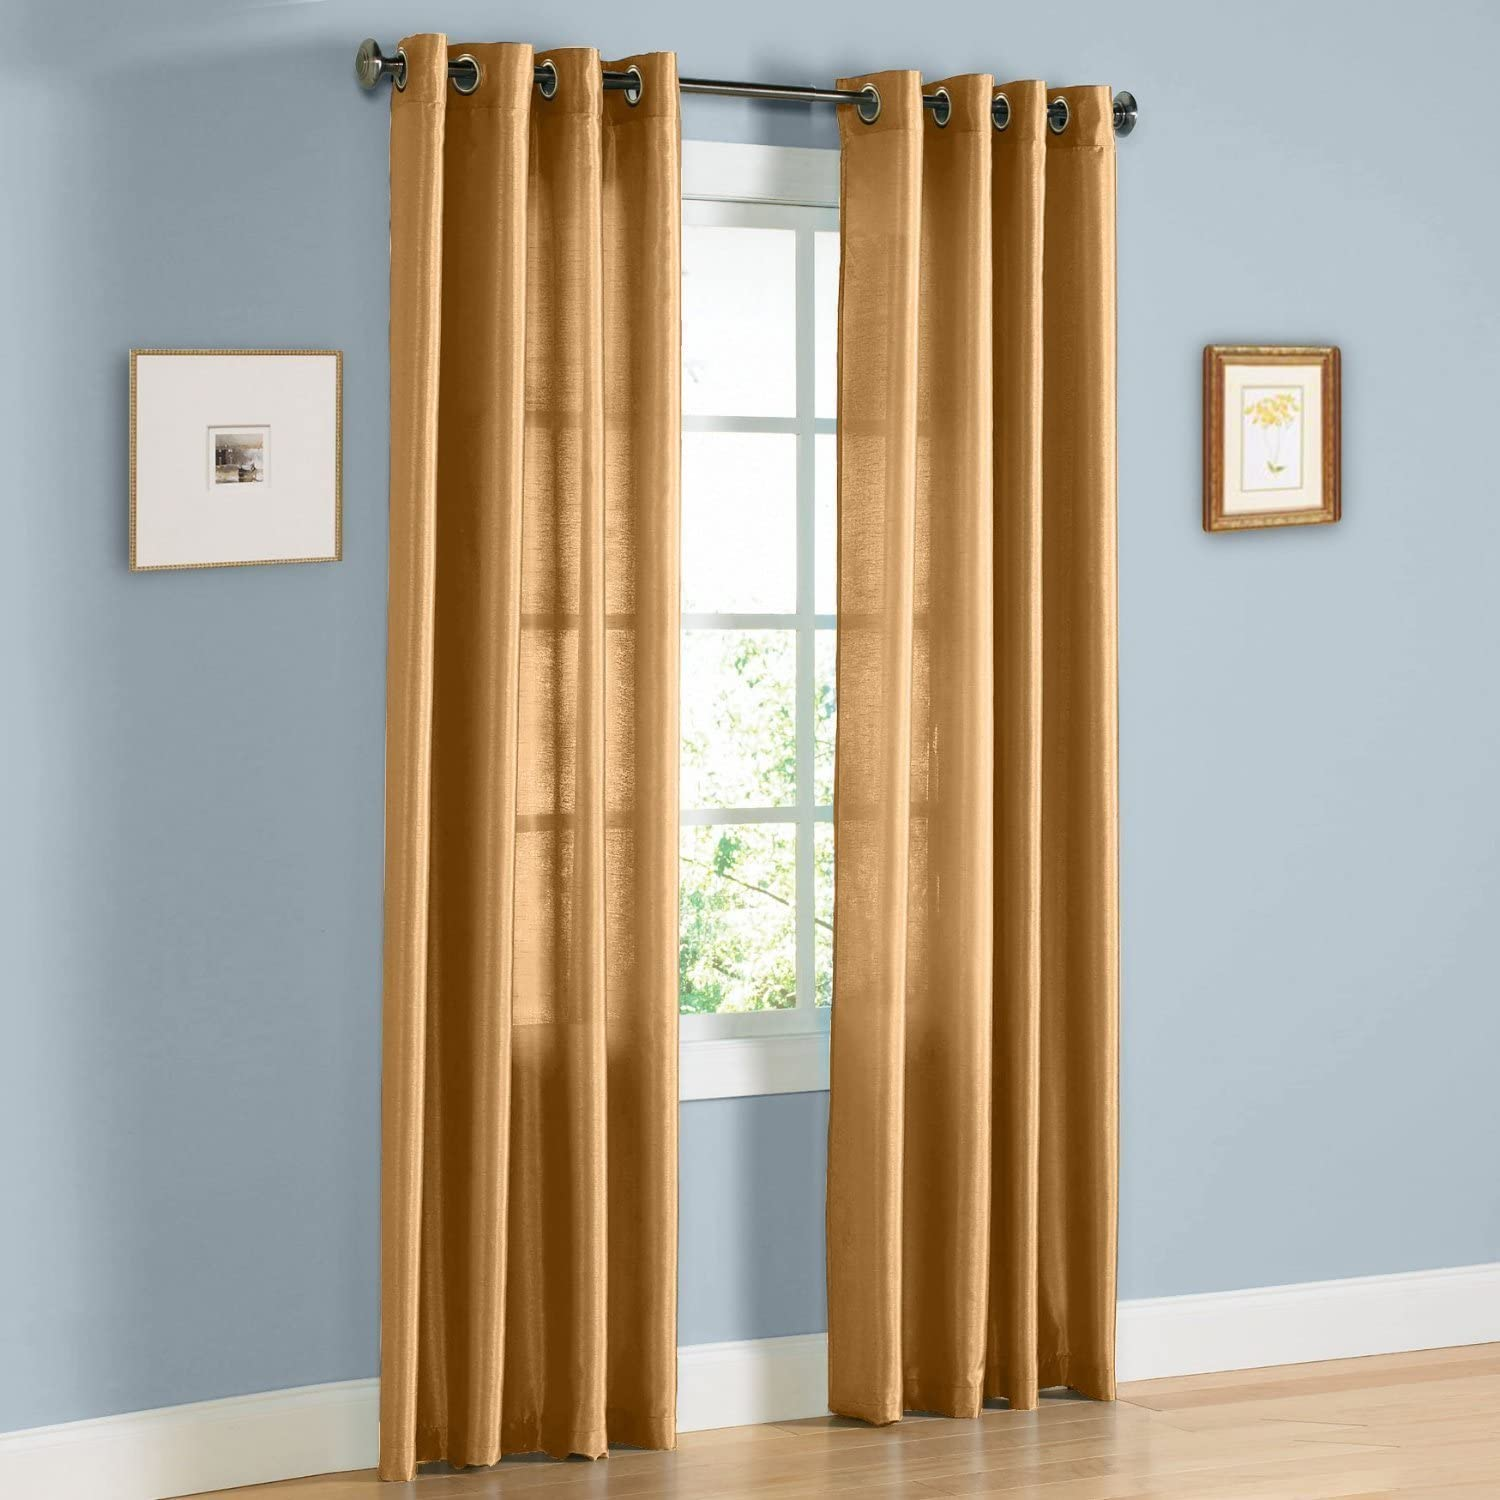 "Gorgeous Home 1 Faux Silk Window Curtain Panel 55"" by 95"" Inch Solid Gold 8 Bronze Grommets Mira"